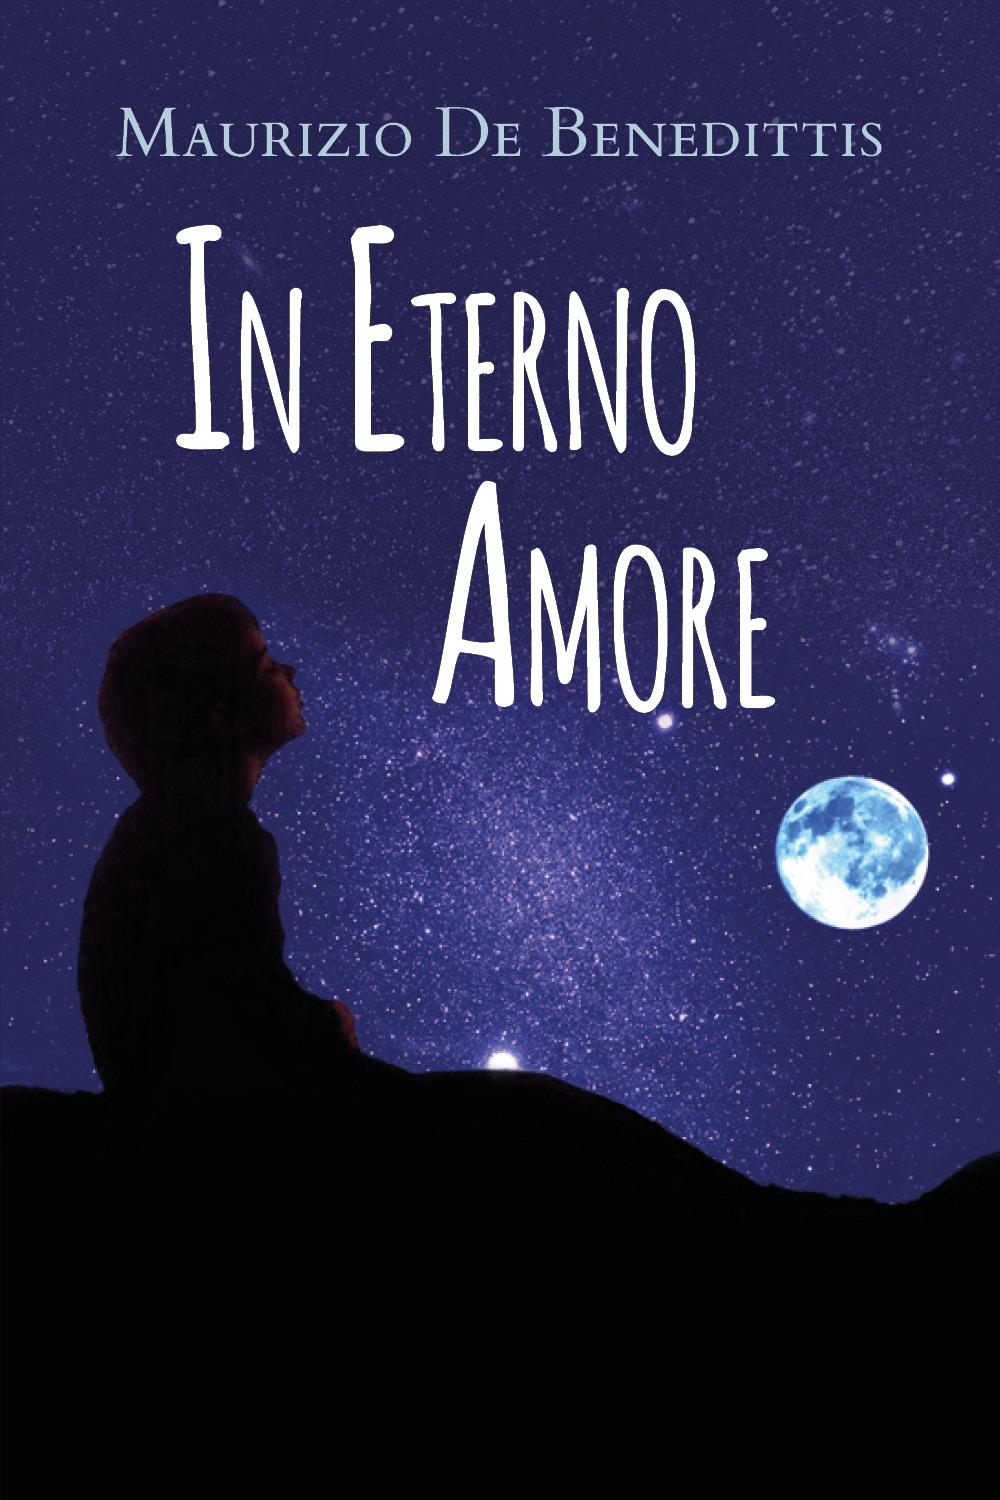 In Eterno Amore